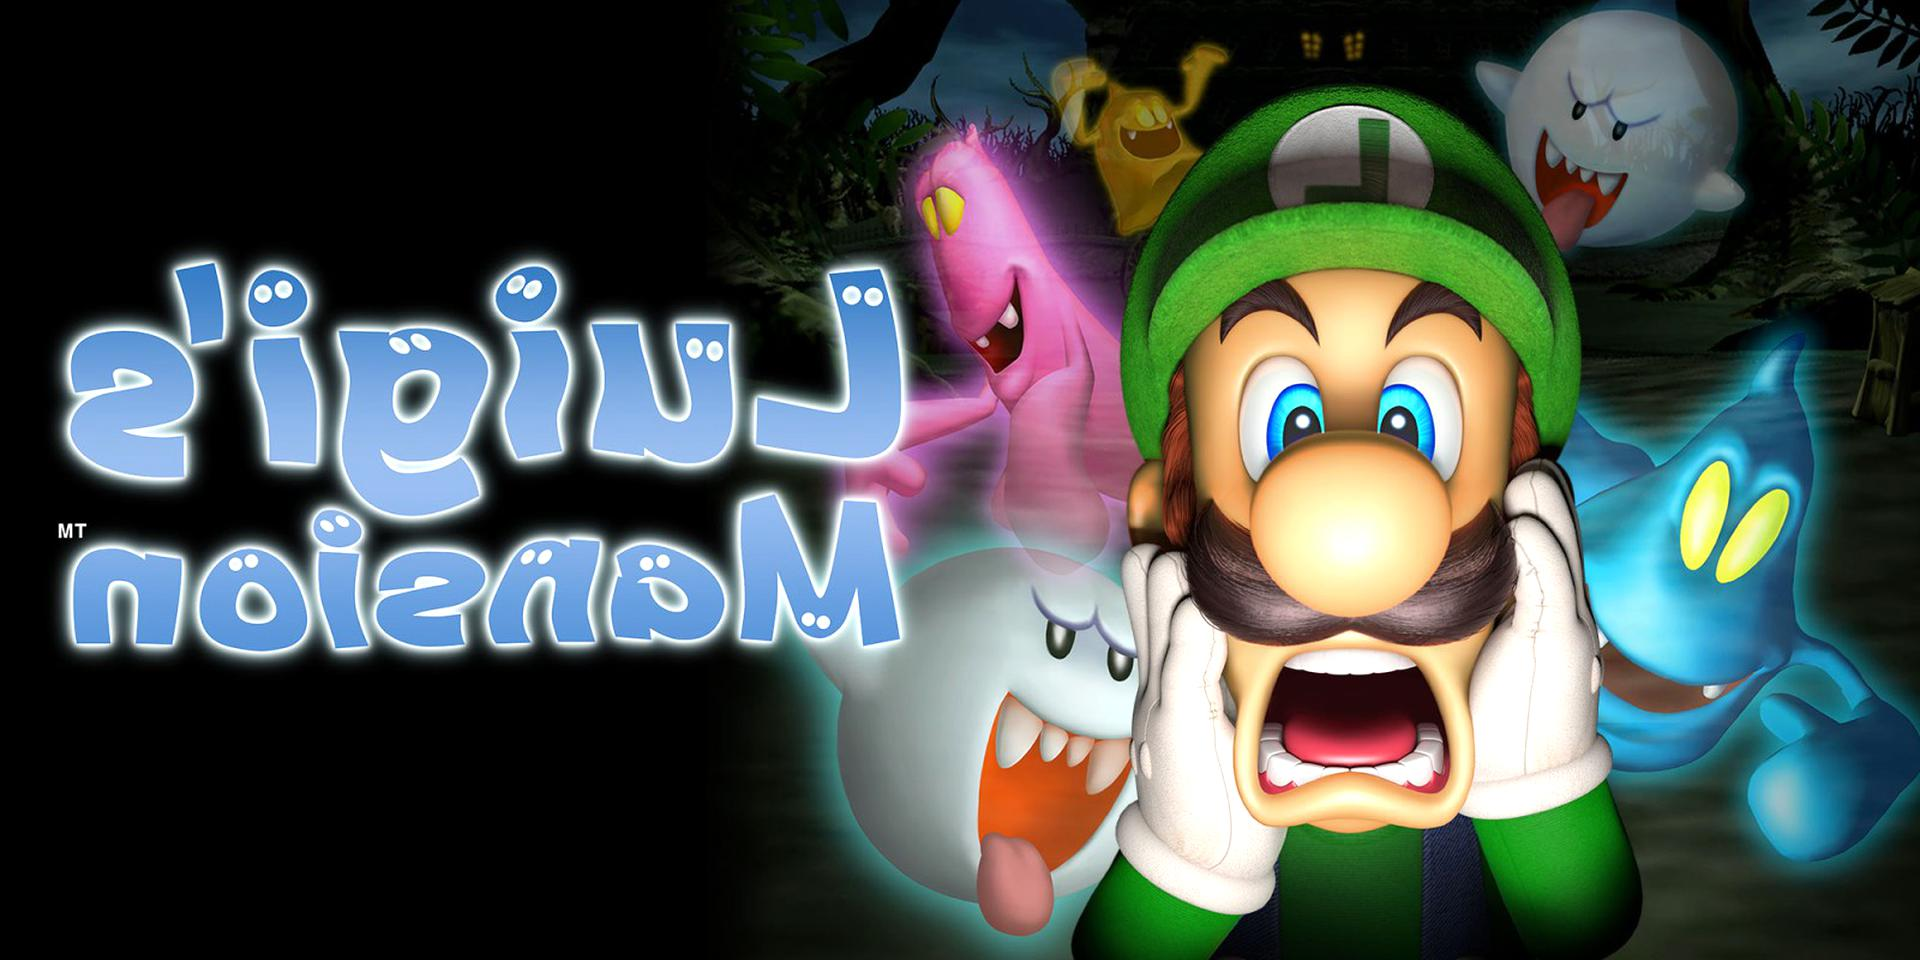 luigi mansion d'occasion